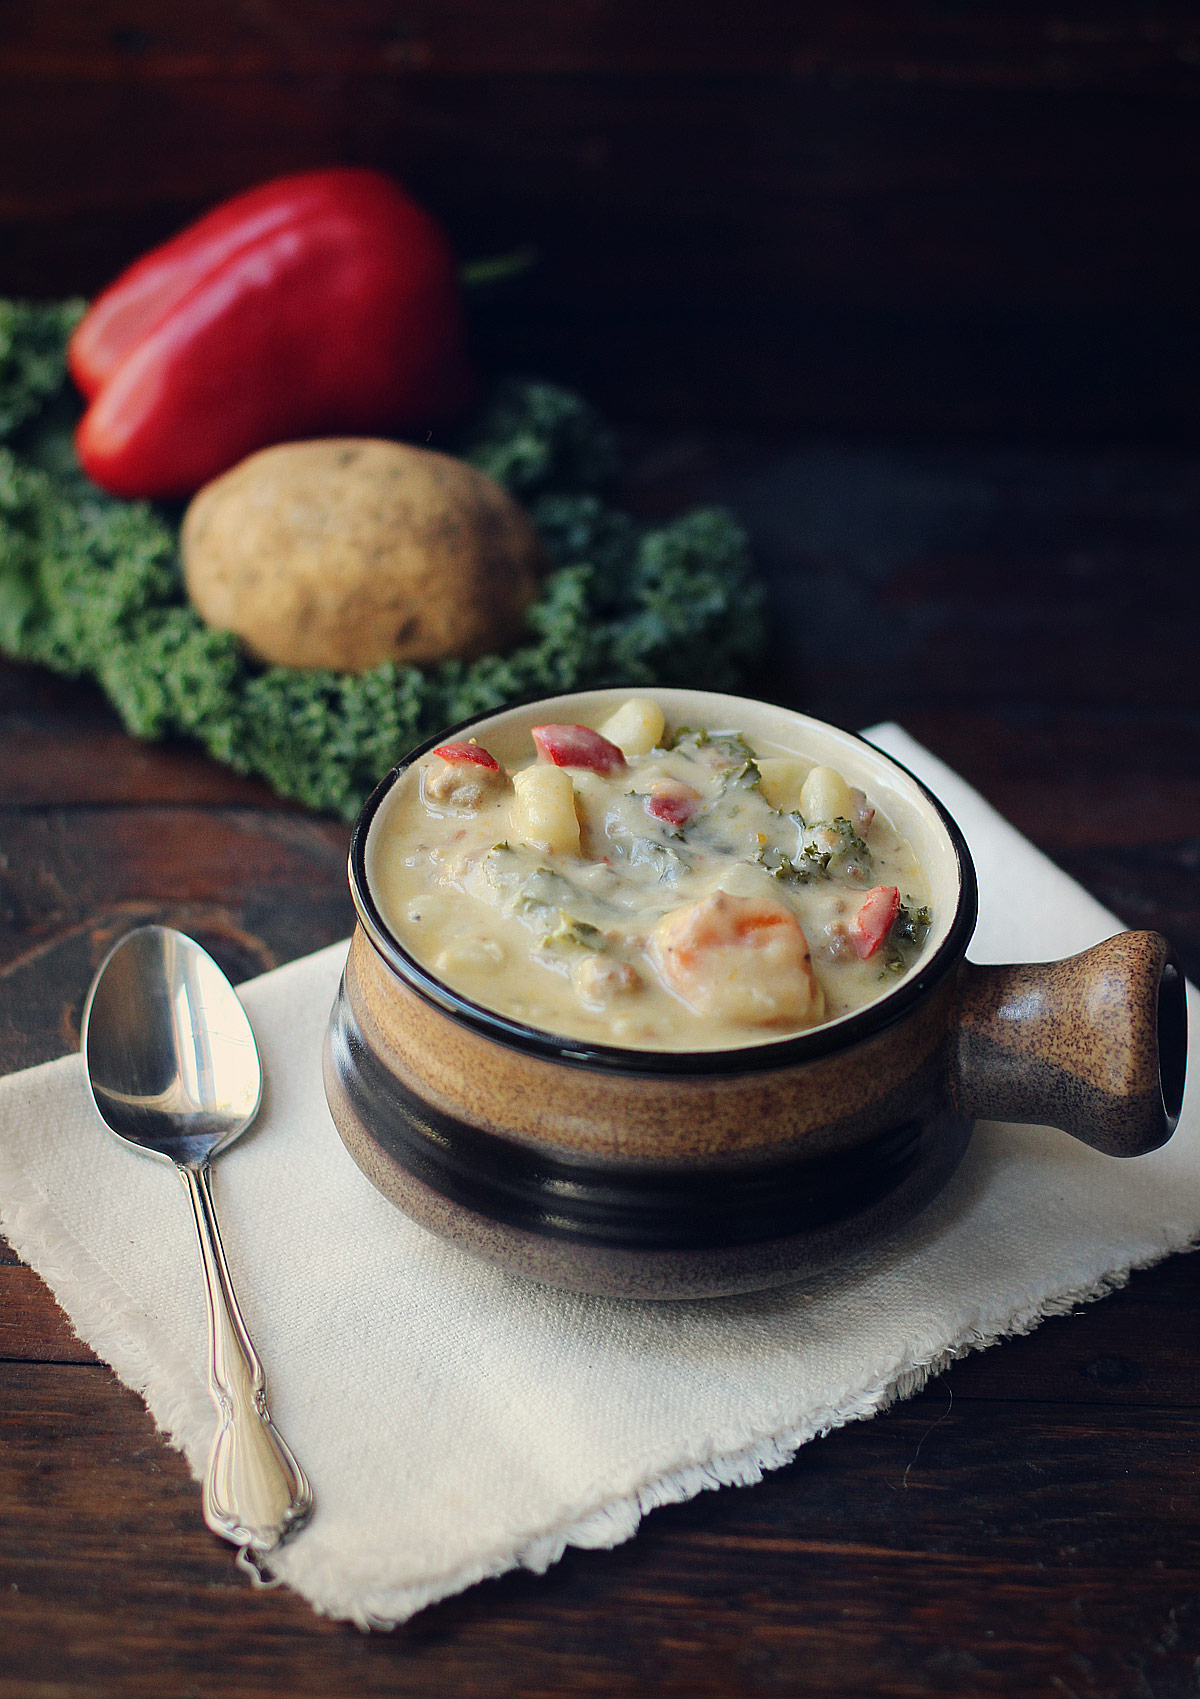 Creamy Potato, Sausage, and Vegetable Soup